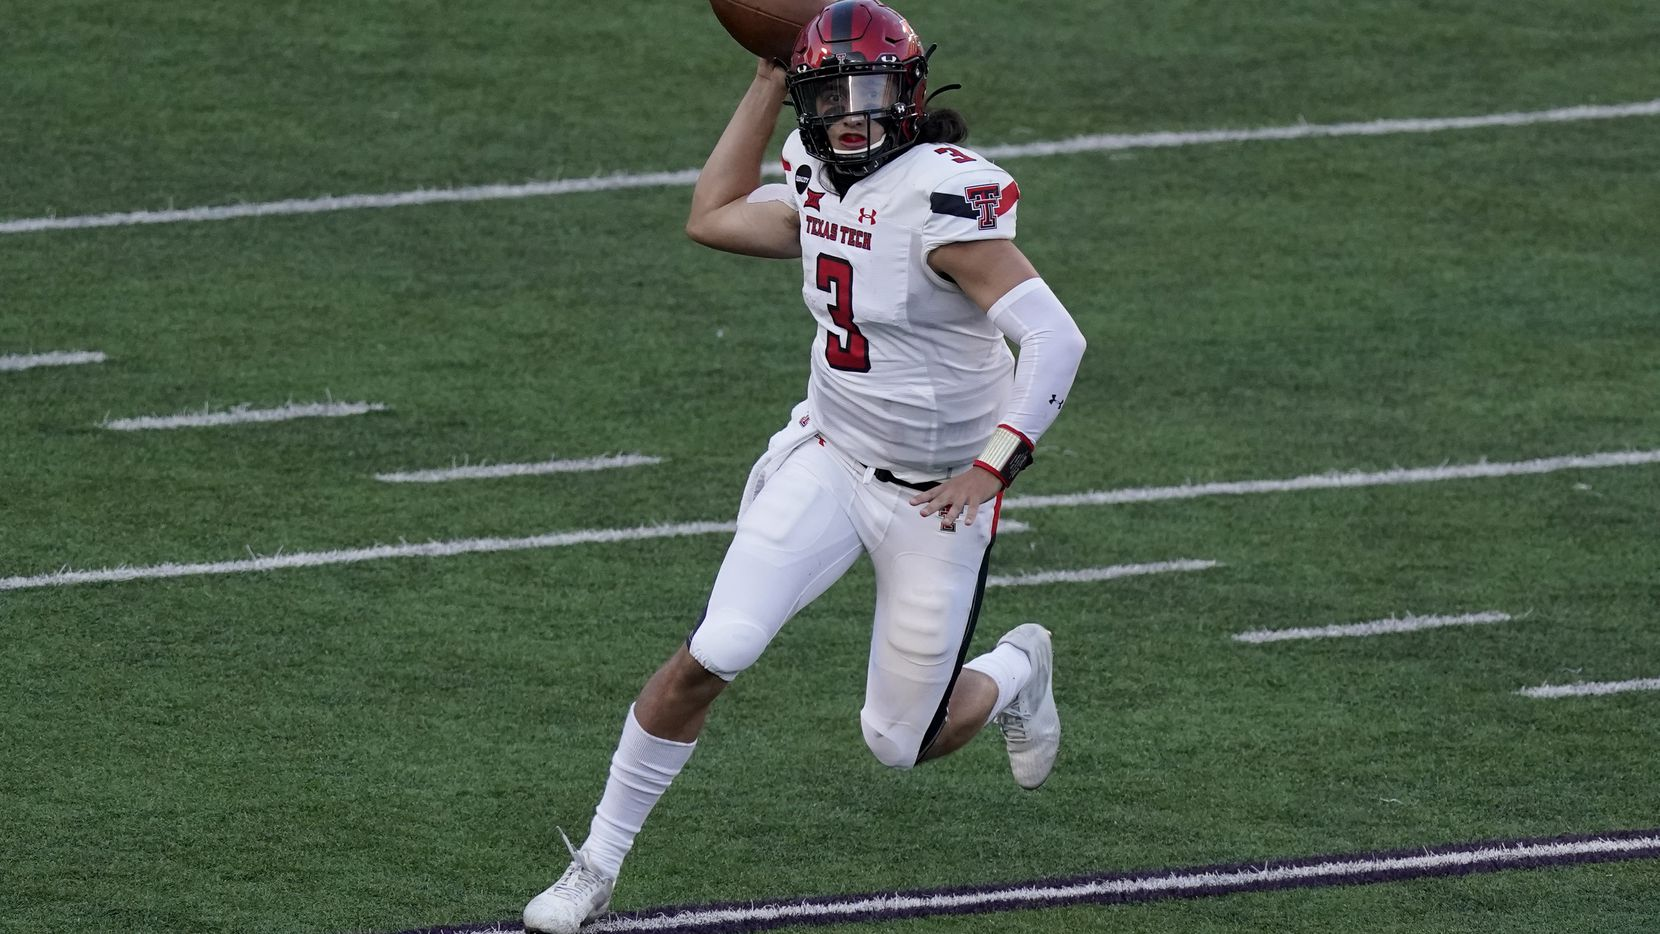 FILE - Texas Tech quarterback Henry Colombi looks to throw the ball during the second half of a game against Kansas State on Saturday, Oct. 3, 2020, in Manhattan, Kan.